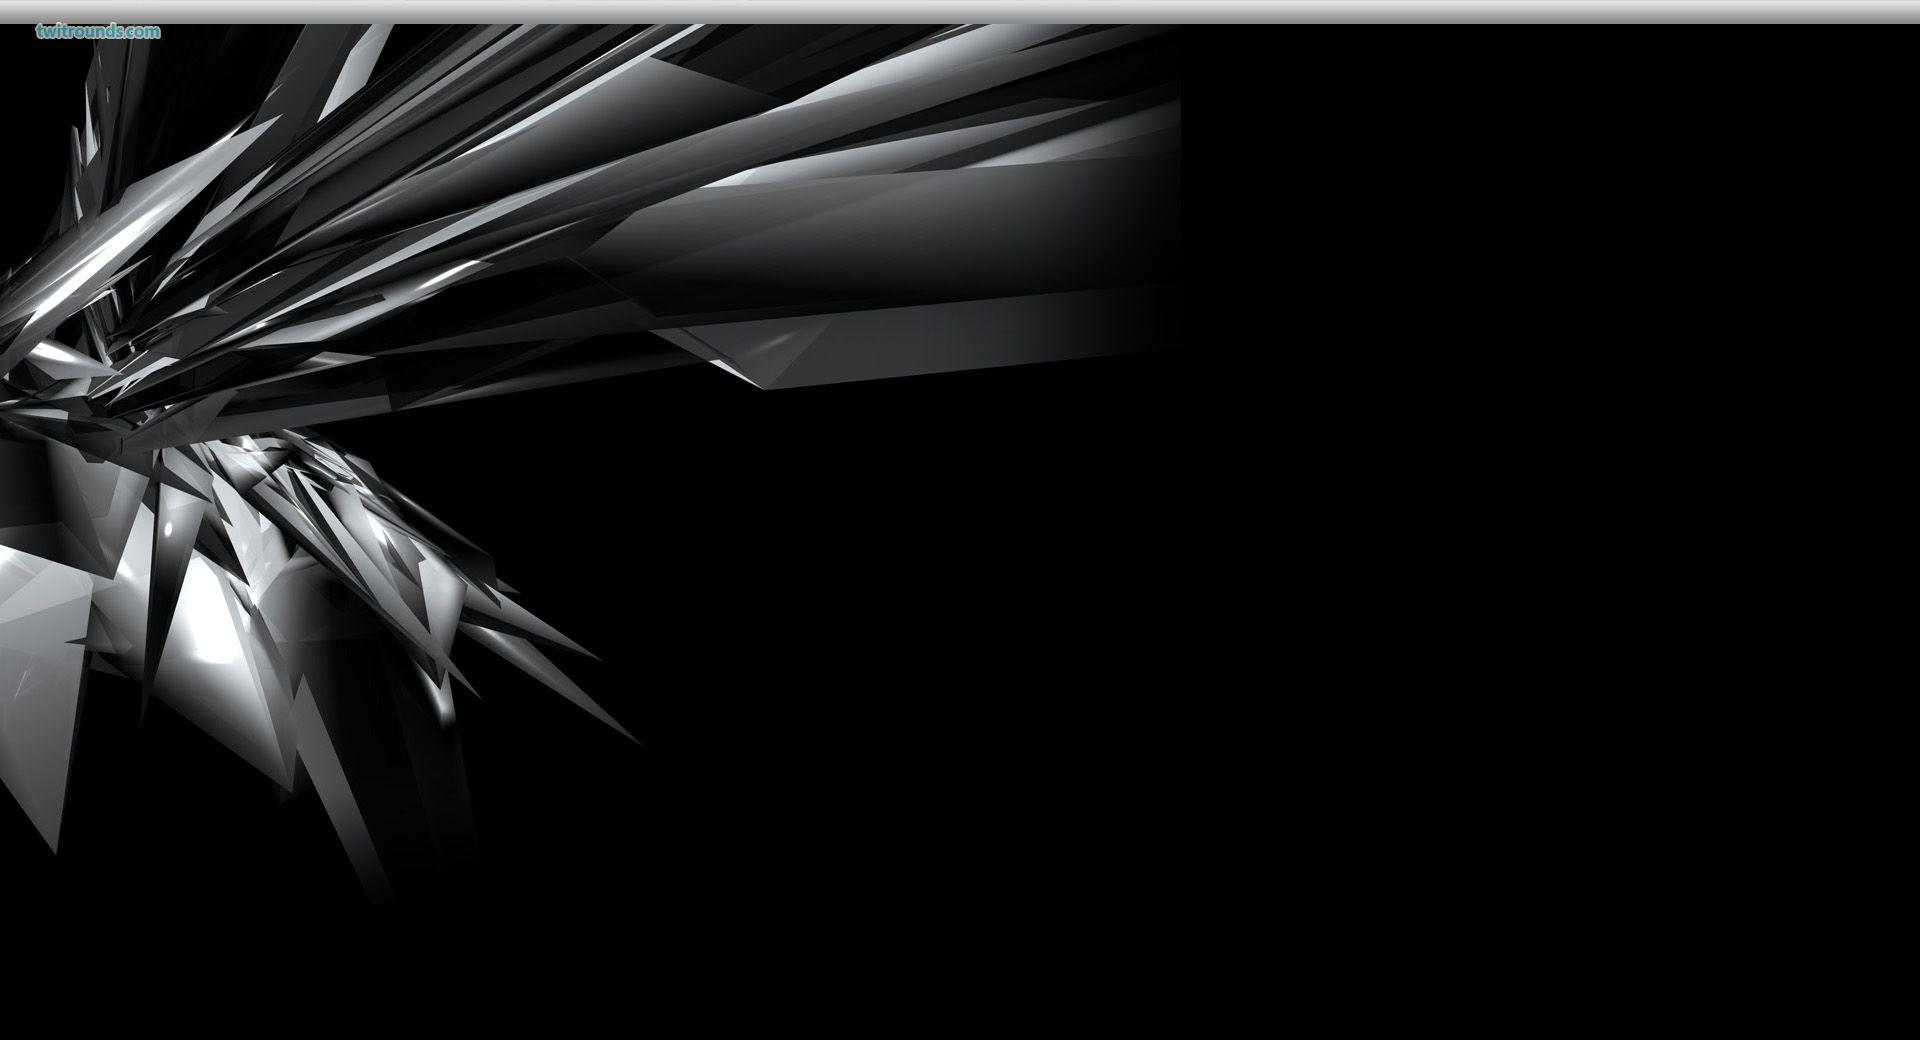 Black And Silver Wallpaper Designs 9 Cool Hd Wallpaper ...